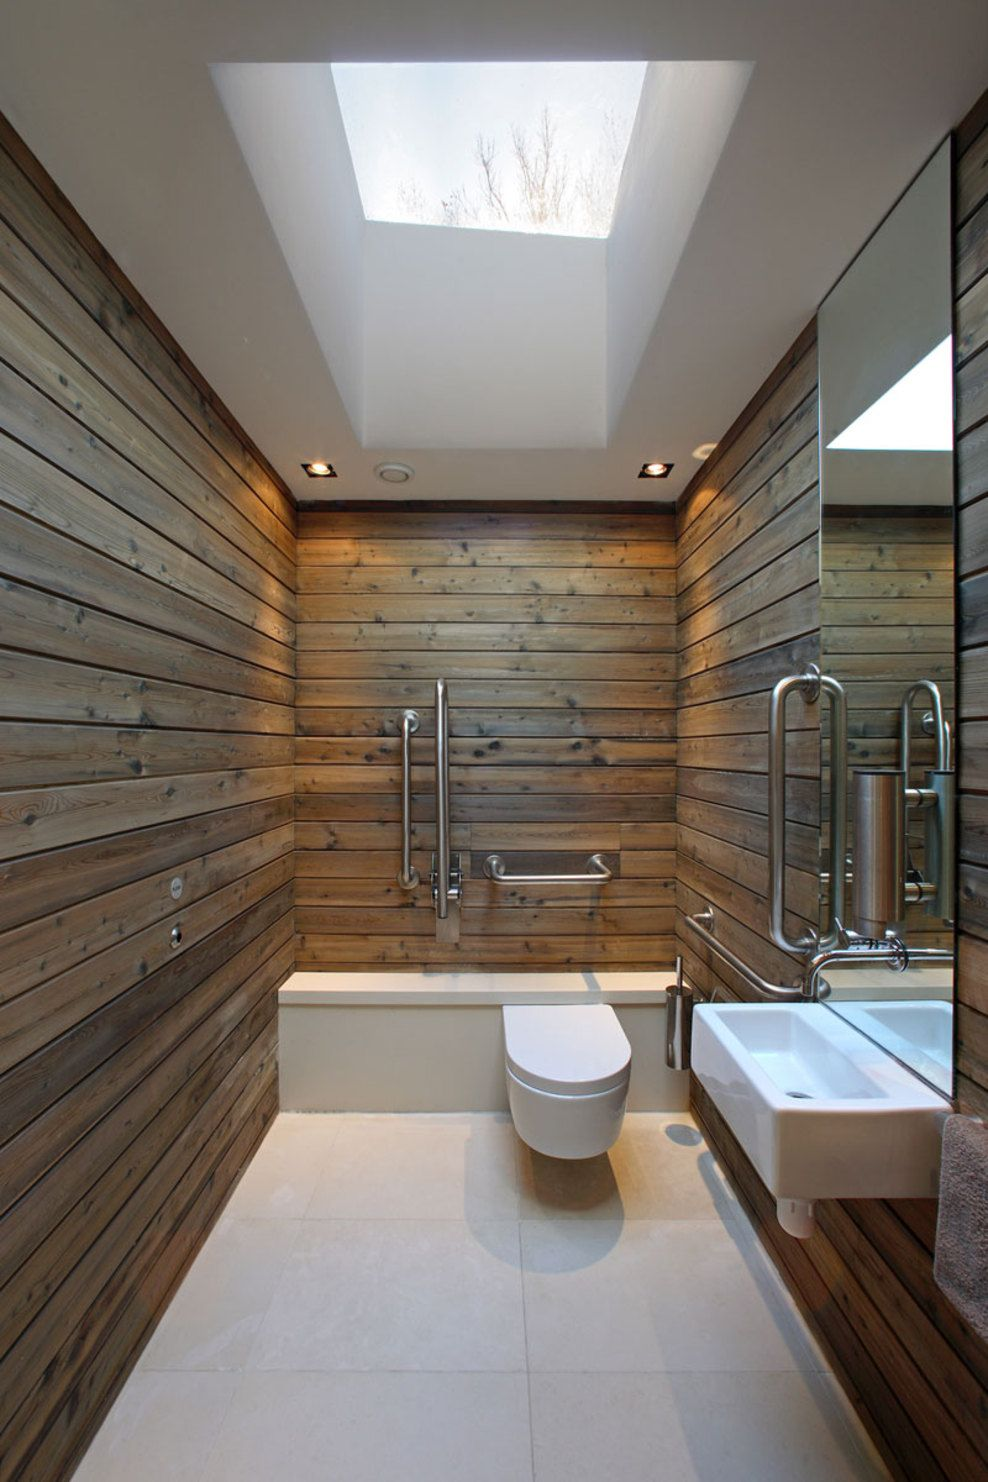 Forget That It S A Bathroom Changing Gears With Light Flooring And The Wood Cladding Rustic Bathroom Designs Narrow Bathroom Designs Bathroom Interior Design